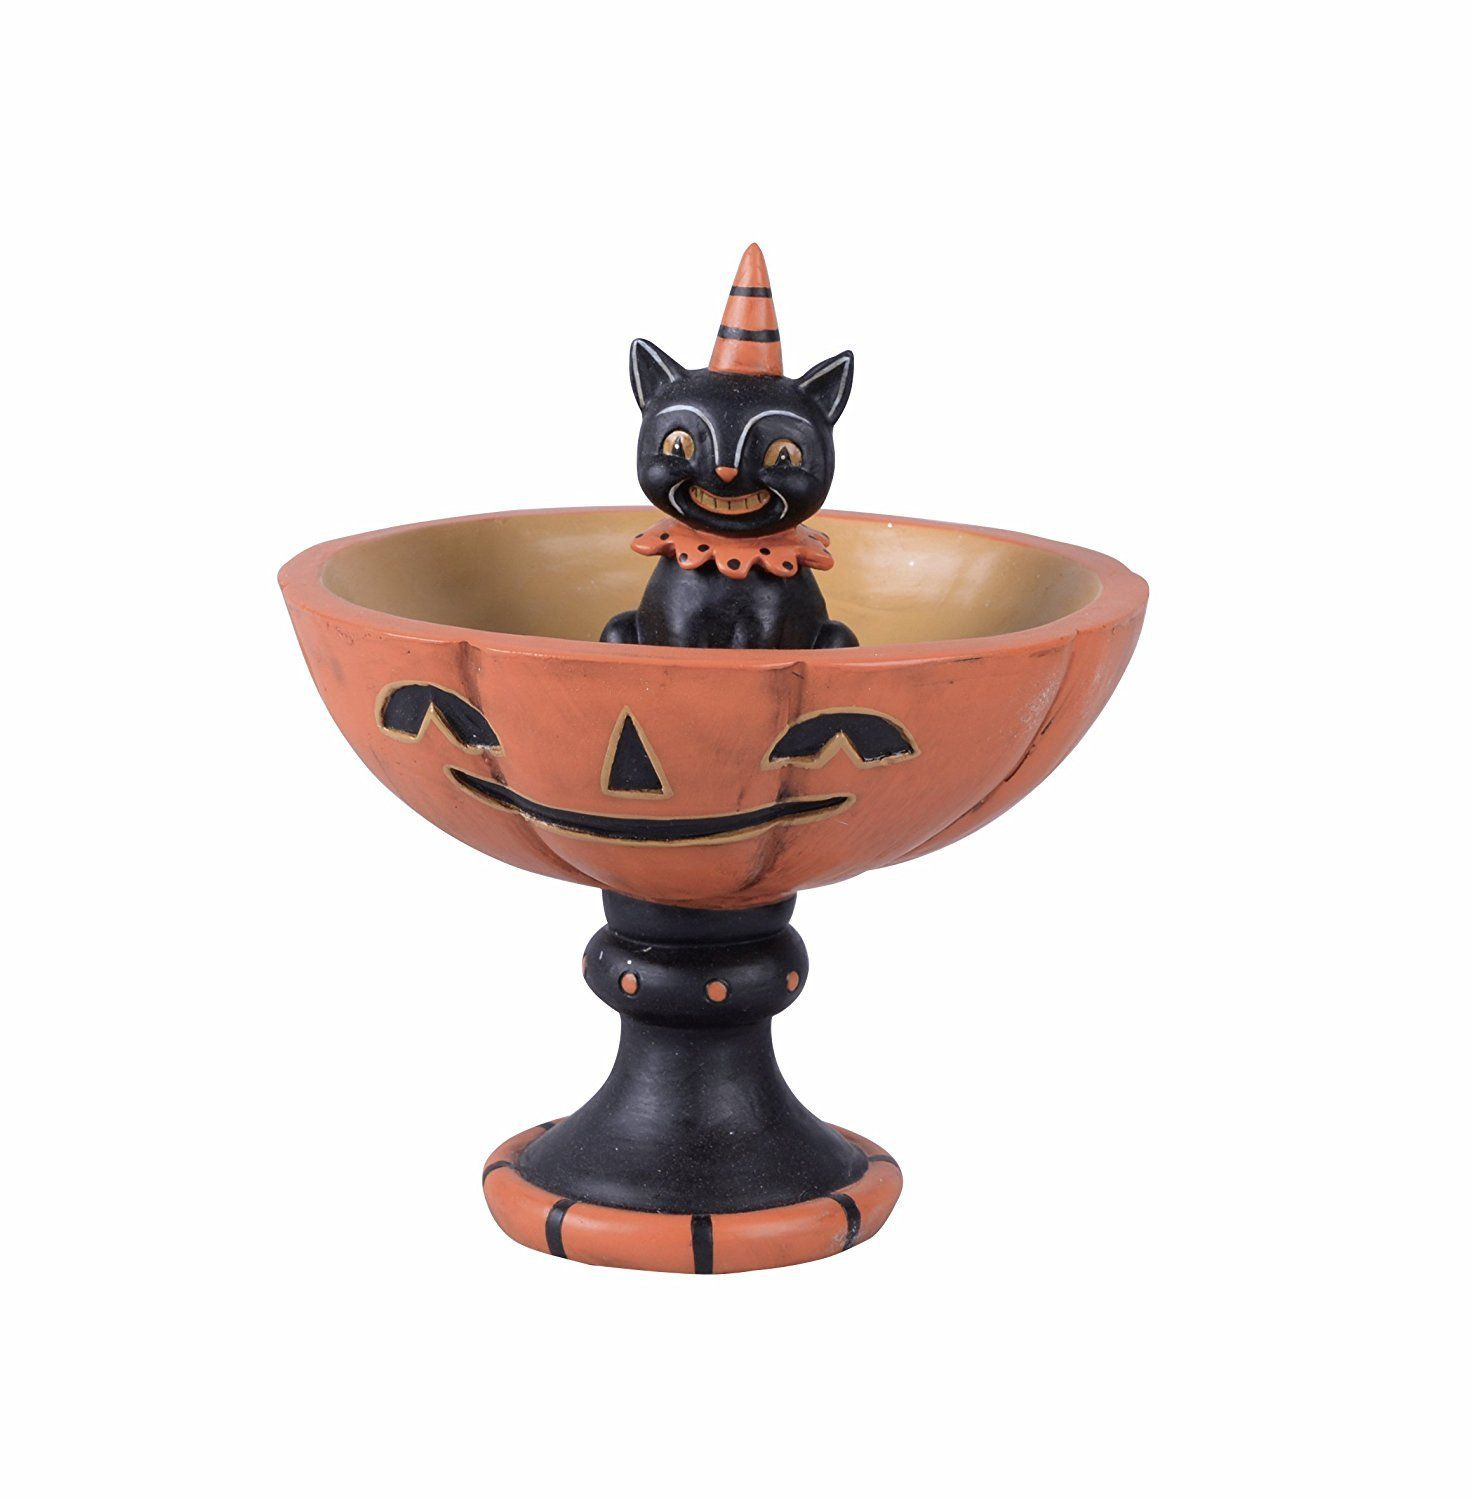 293ba5f4ae9 Vintage Retro Animal Halloween Candy Bowl Candy Dish On Stand Decoration